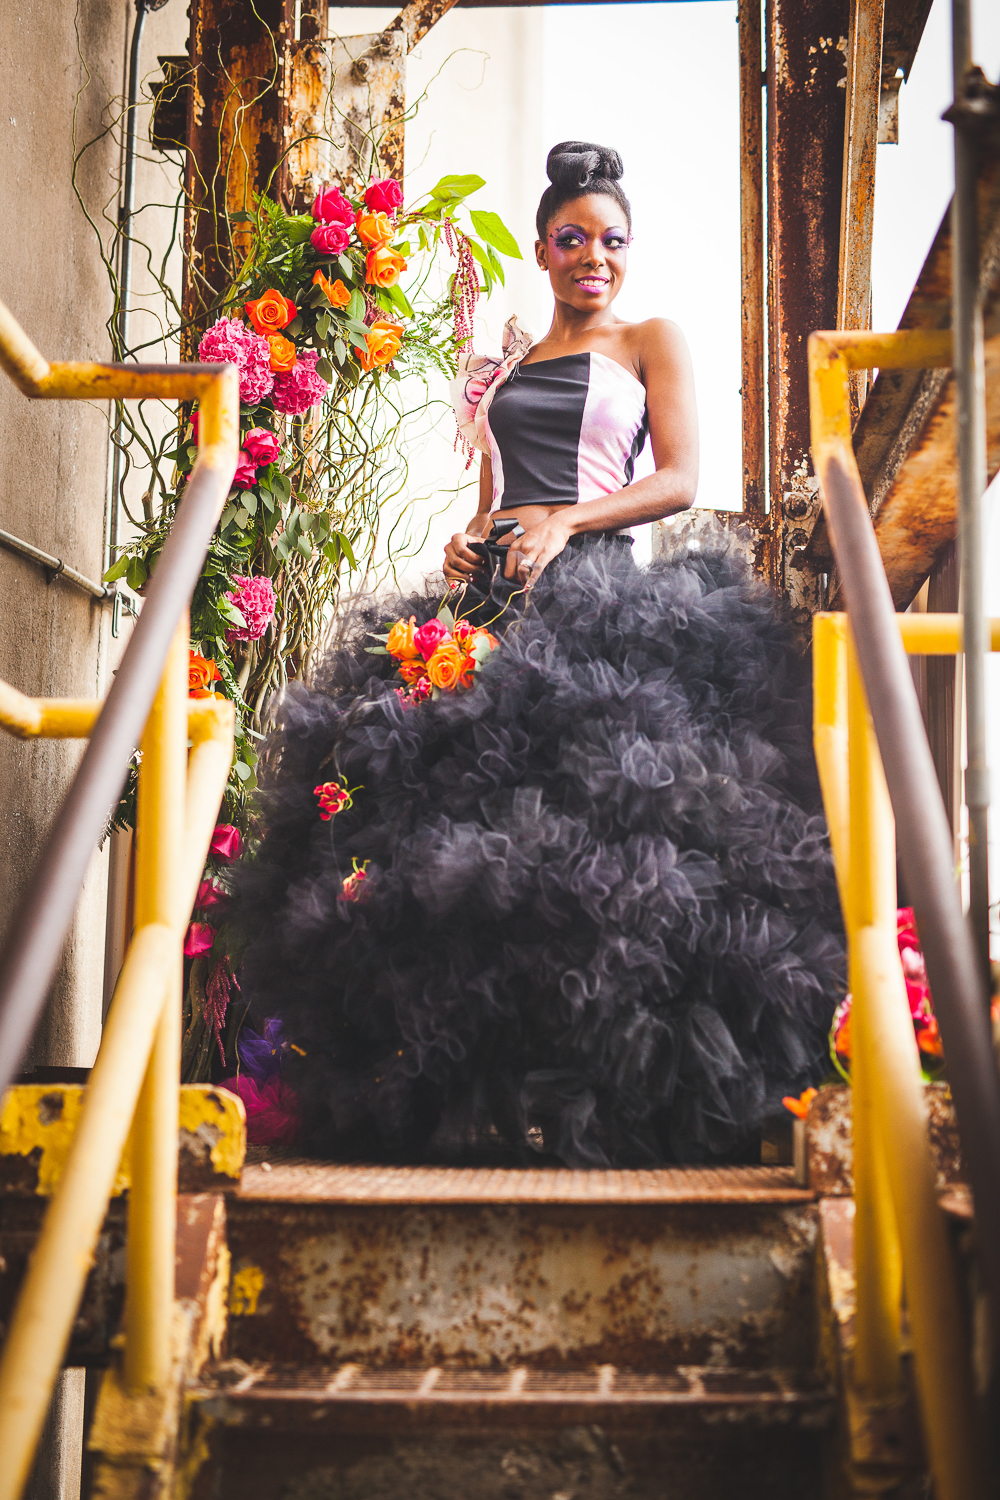 blackbean-photography-miracle-twenty-one-urban-wedding-shoot-urban-gypsy-couture-colourful-wedding-shoot-49